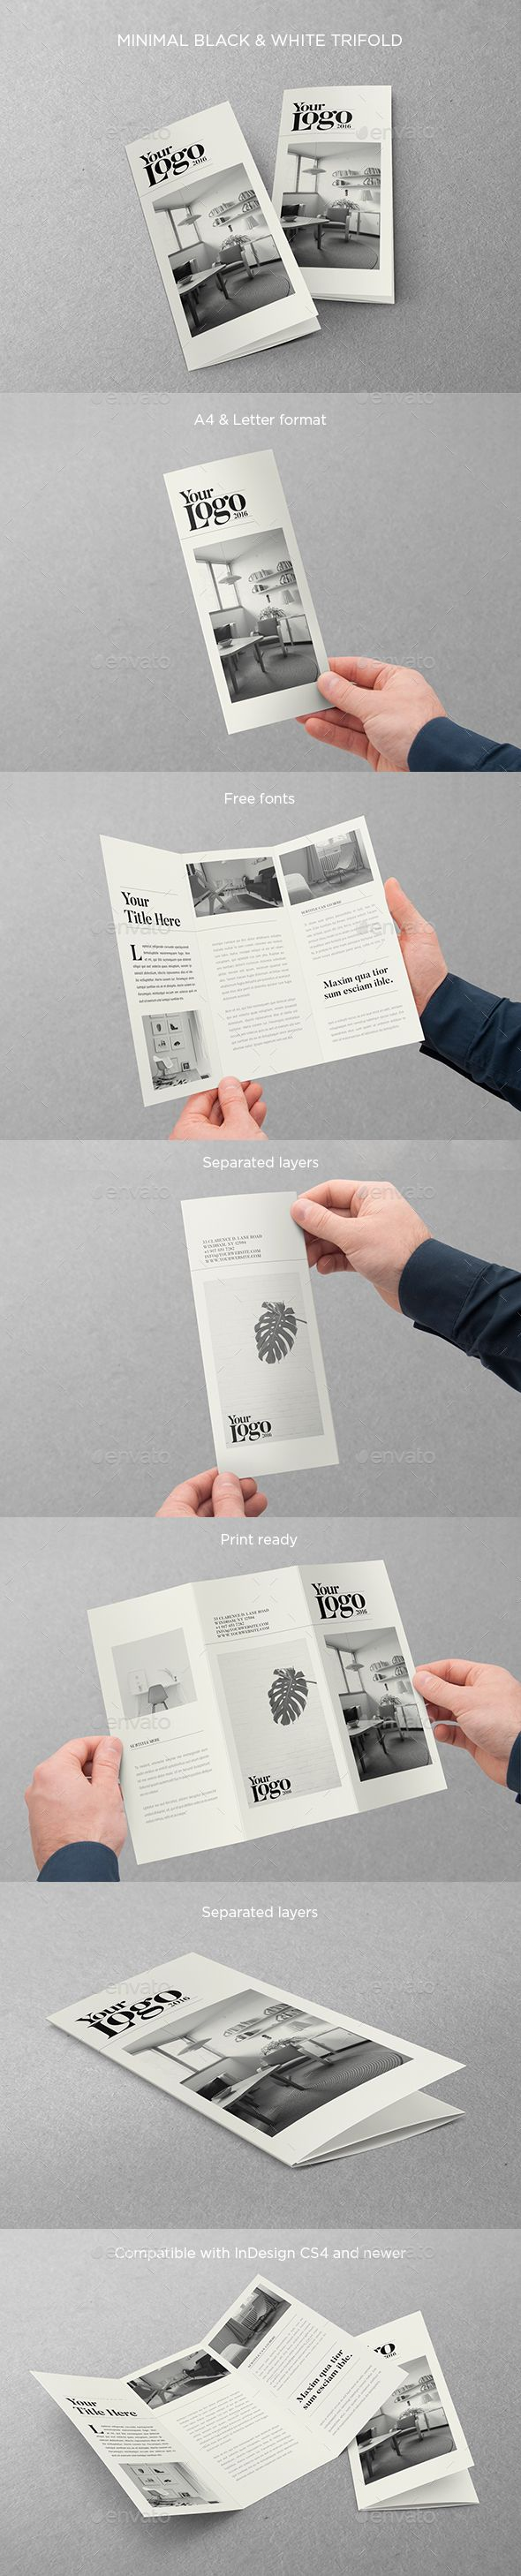 Minimal Black & White Trifold Brochure Template PSD. Download here: https://graphicriver.net/item/minimal-black-white-trifold/17414656?ref=ksioks